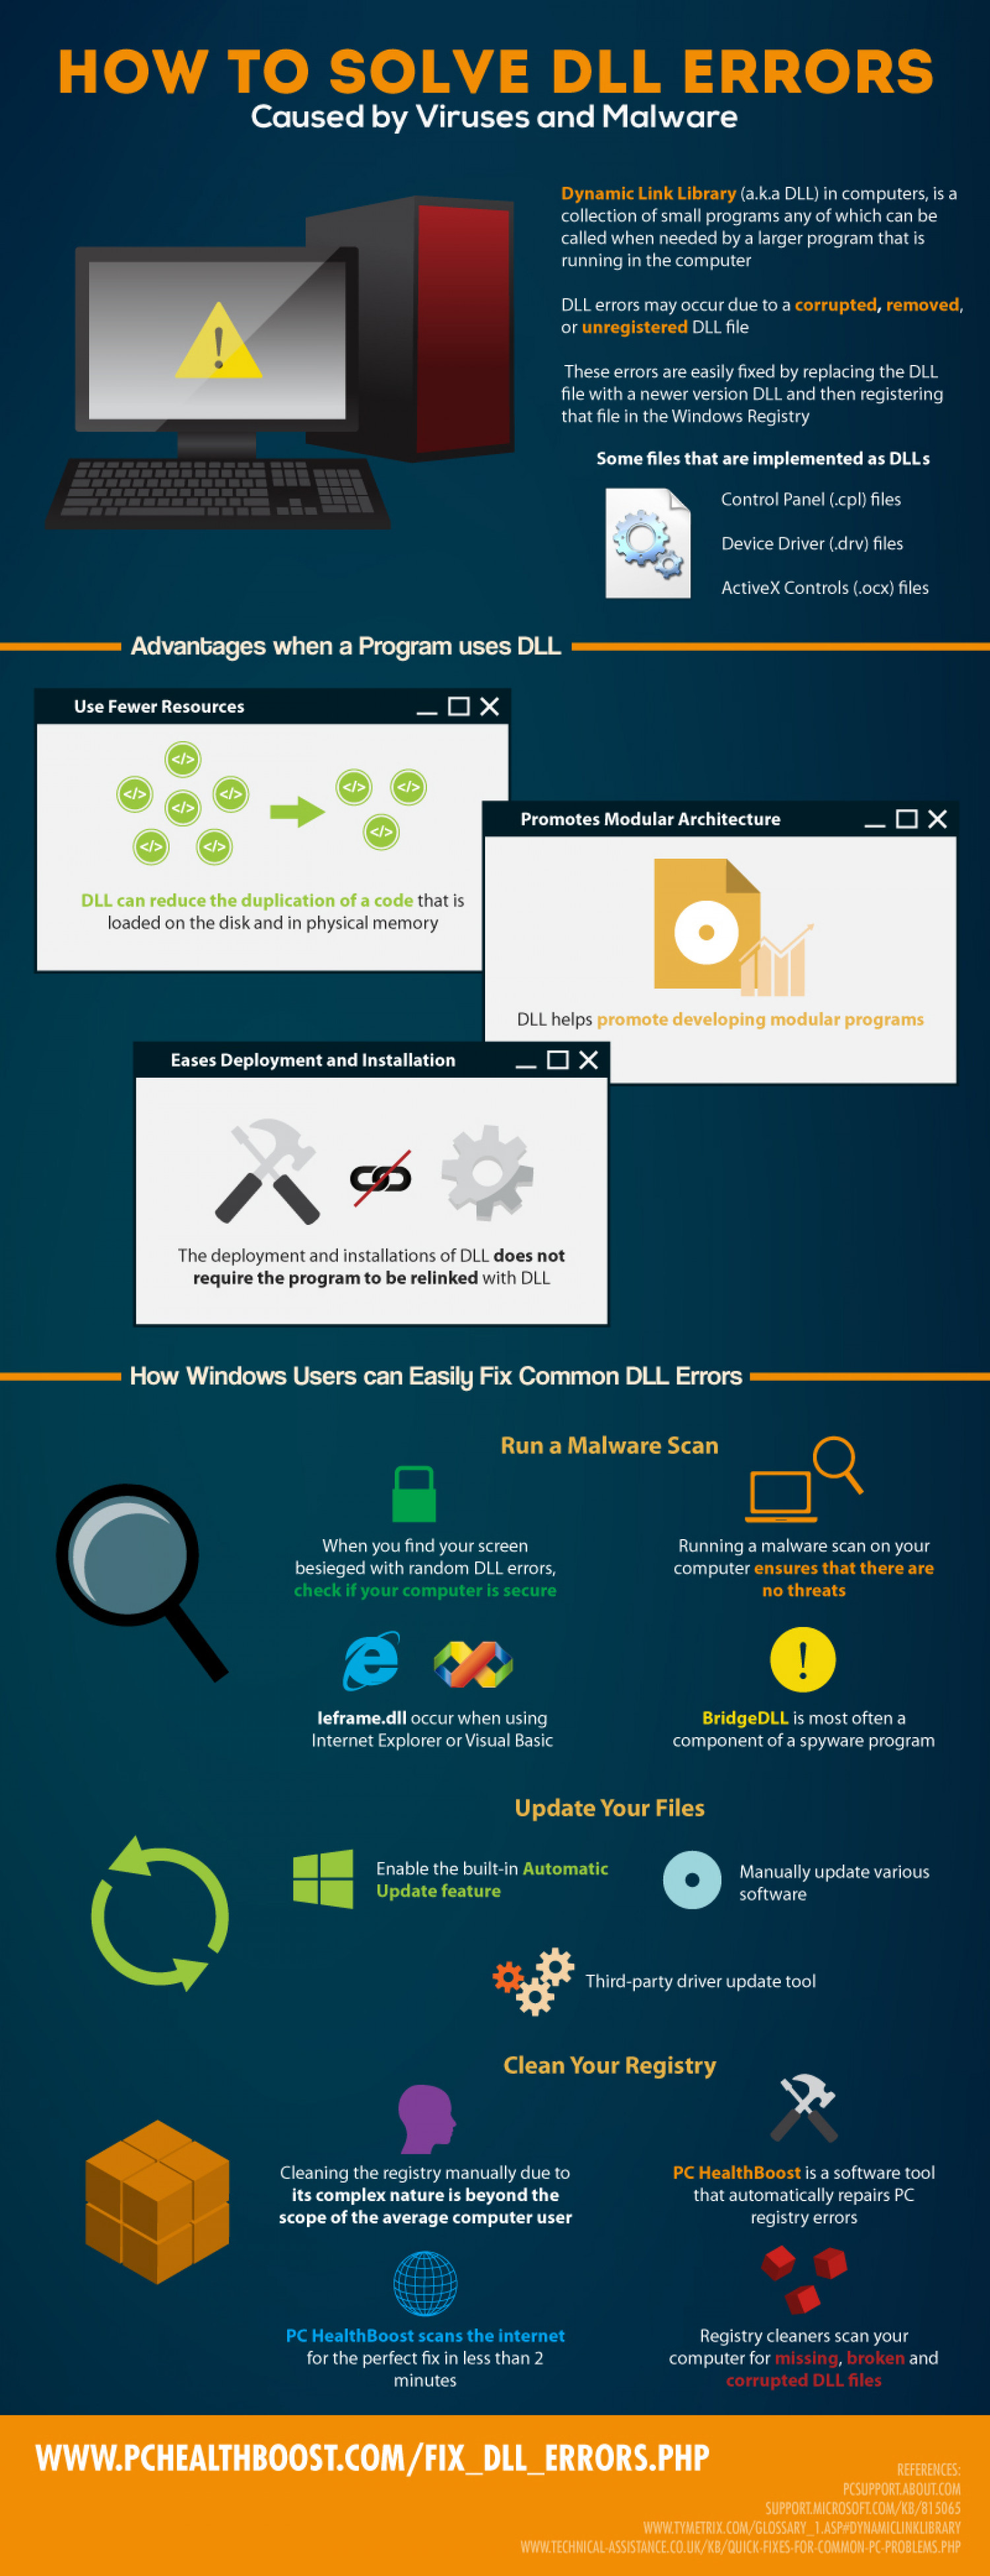 How to Solve DLL Errors Caused by Viruses and Malware Infographic